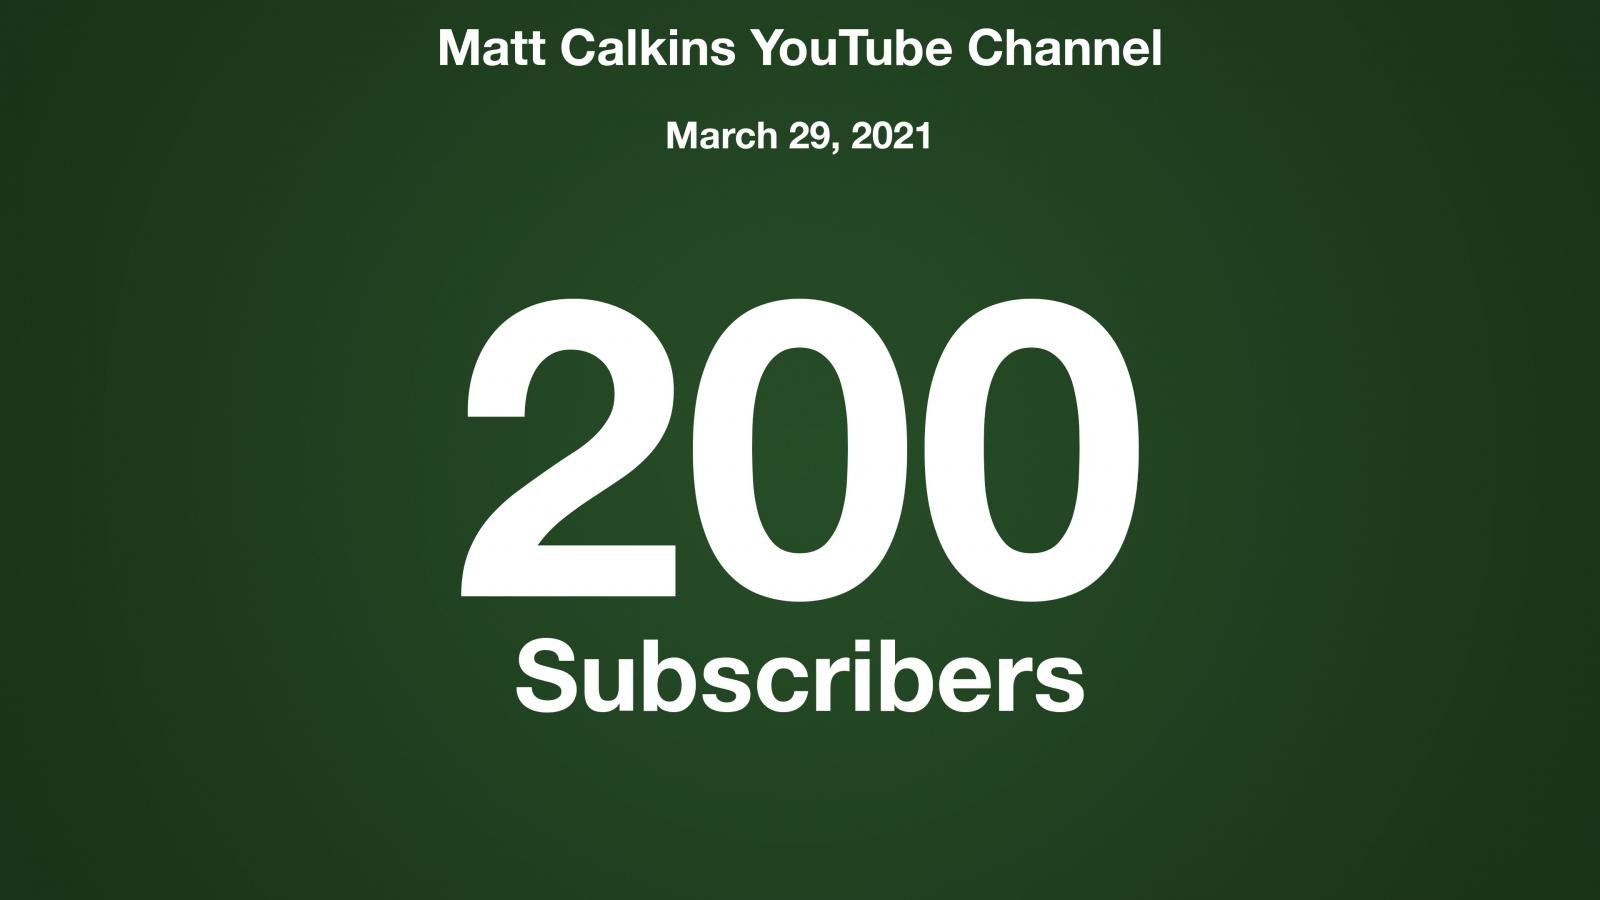 Matt Calkins YouTube Channel, March 29 2021, 200 Subsribers